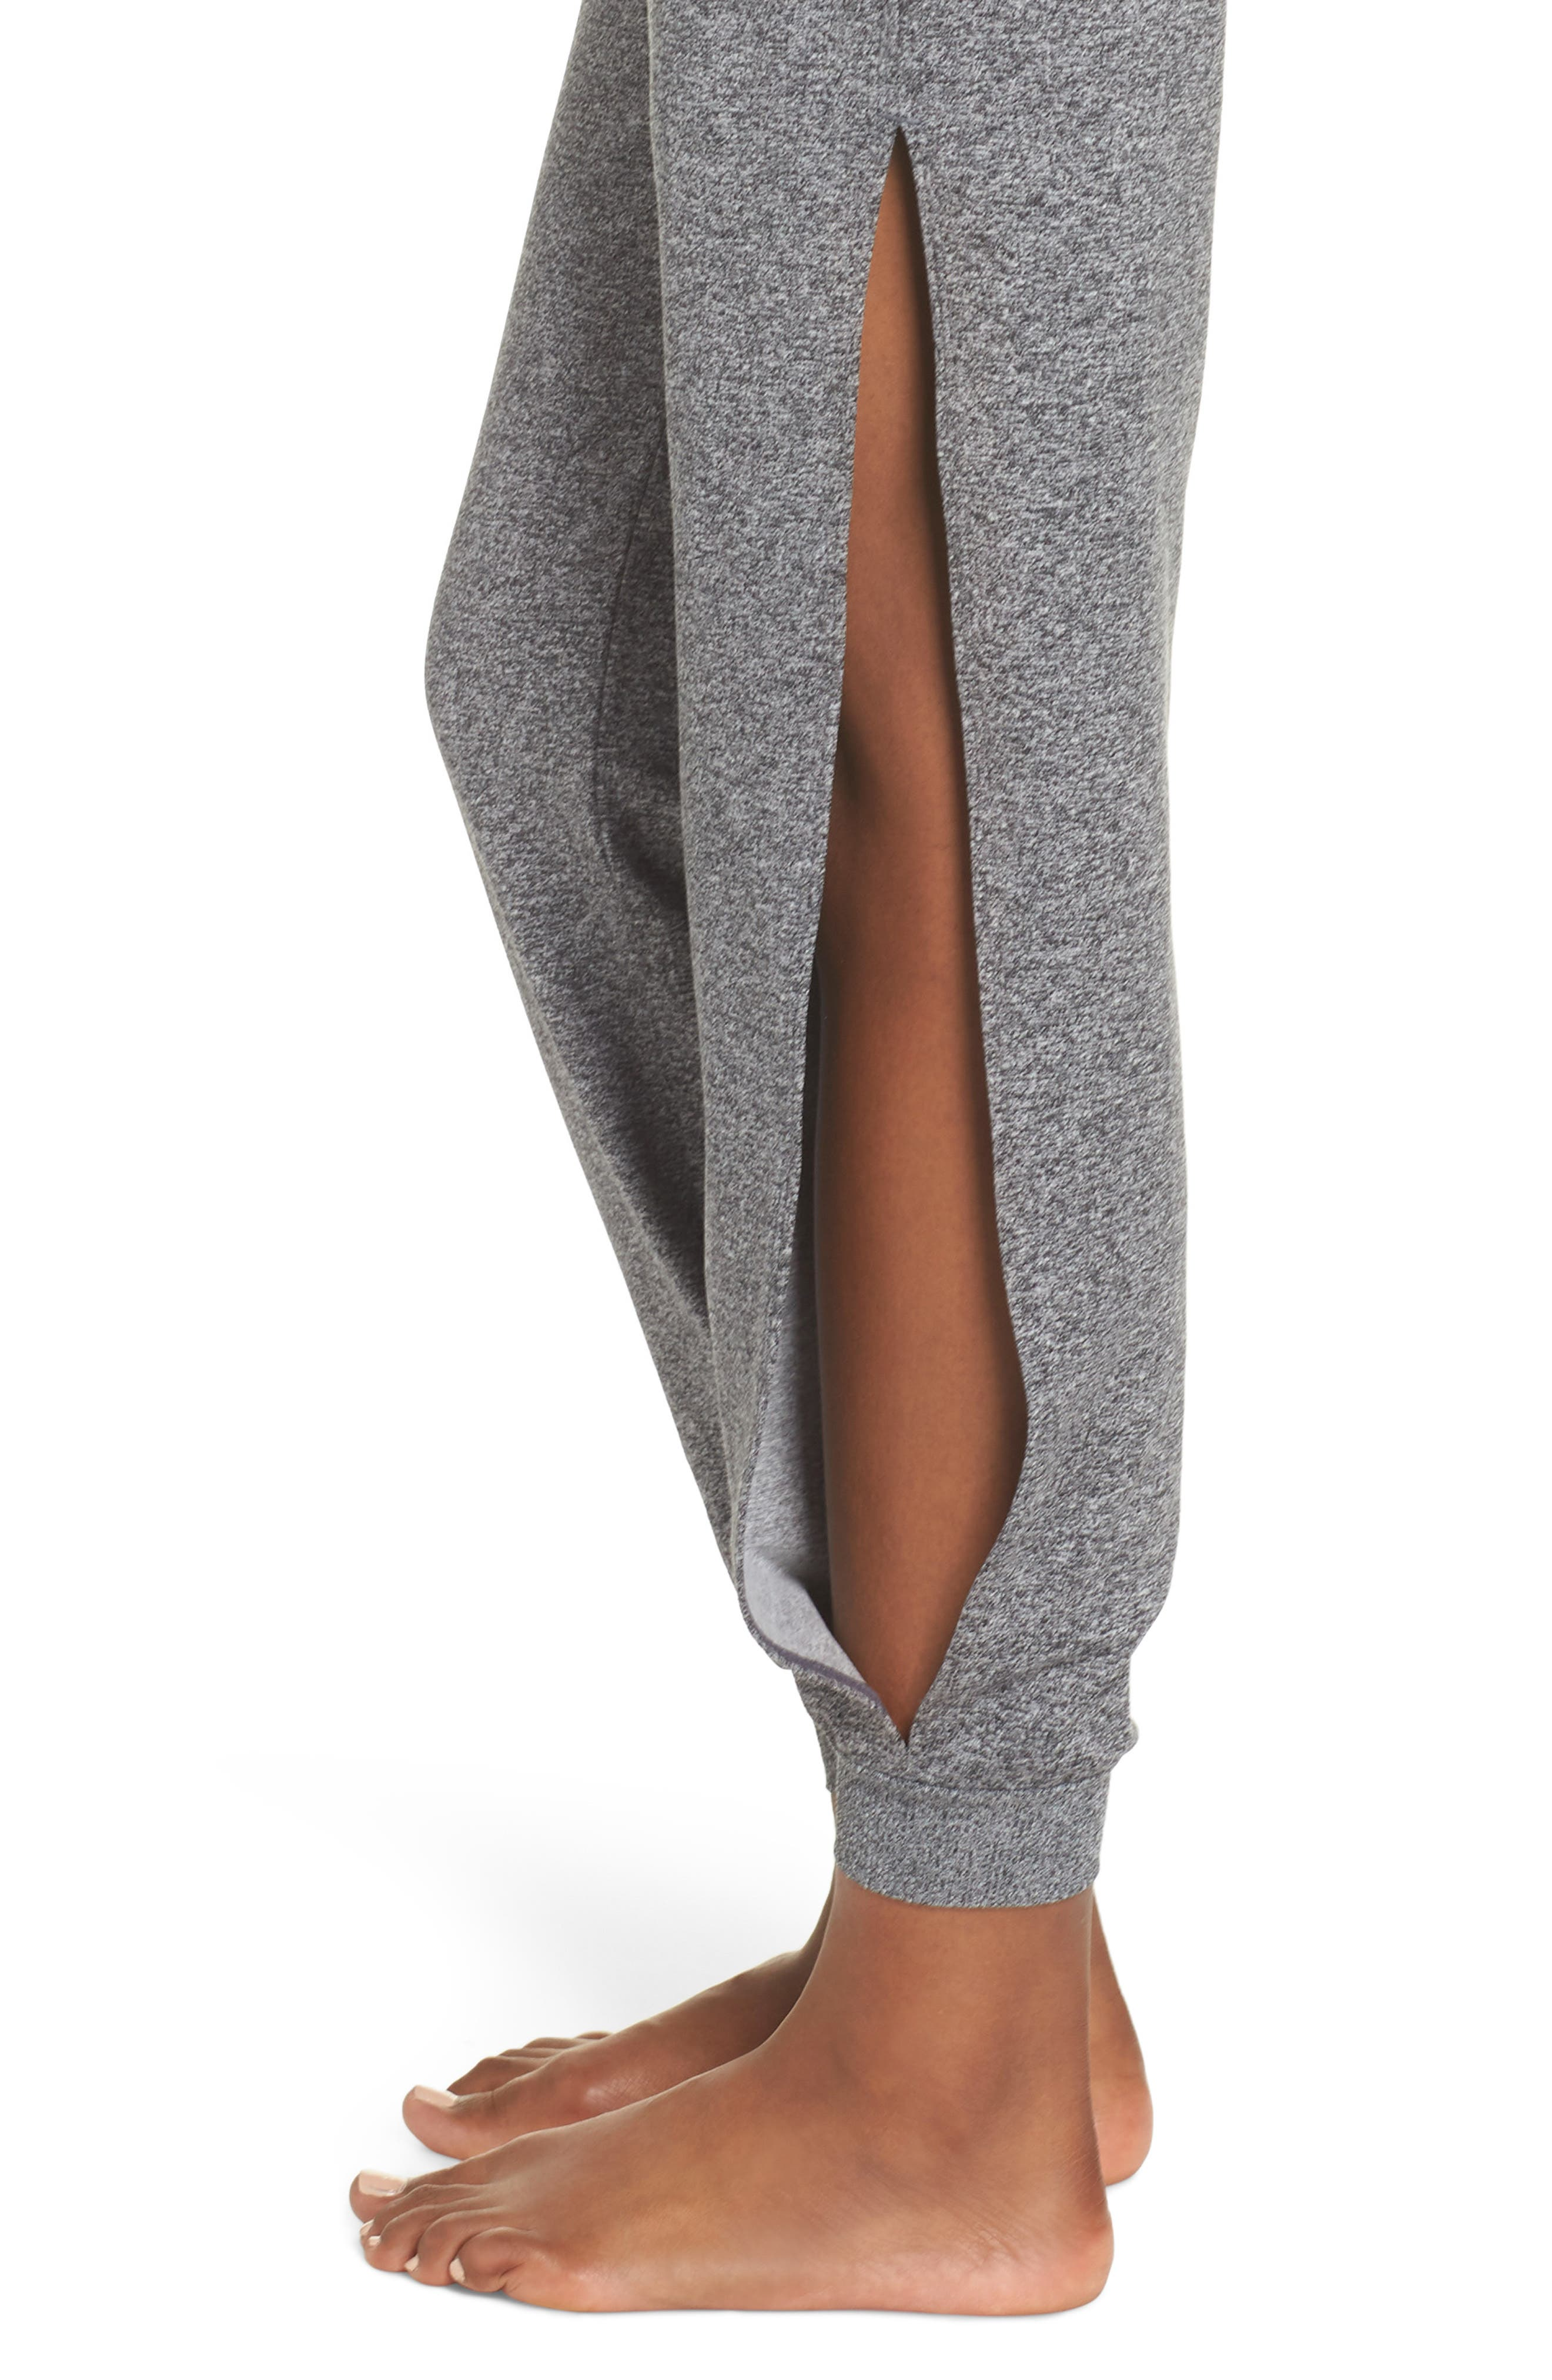 Re-Covery Recycled Lounge Pants,                             Alternate thumbnail 4, color,                             001